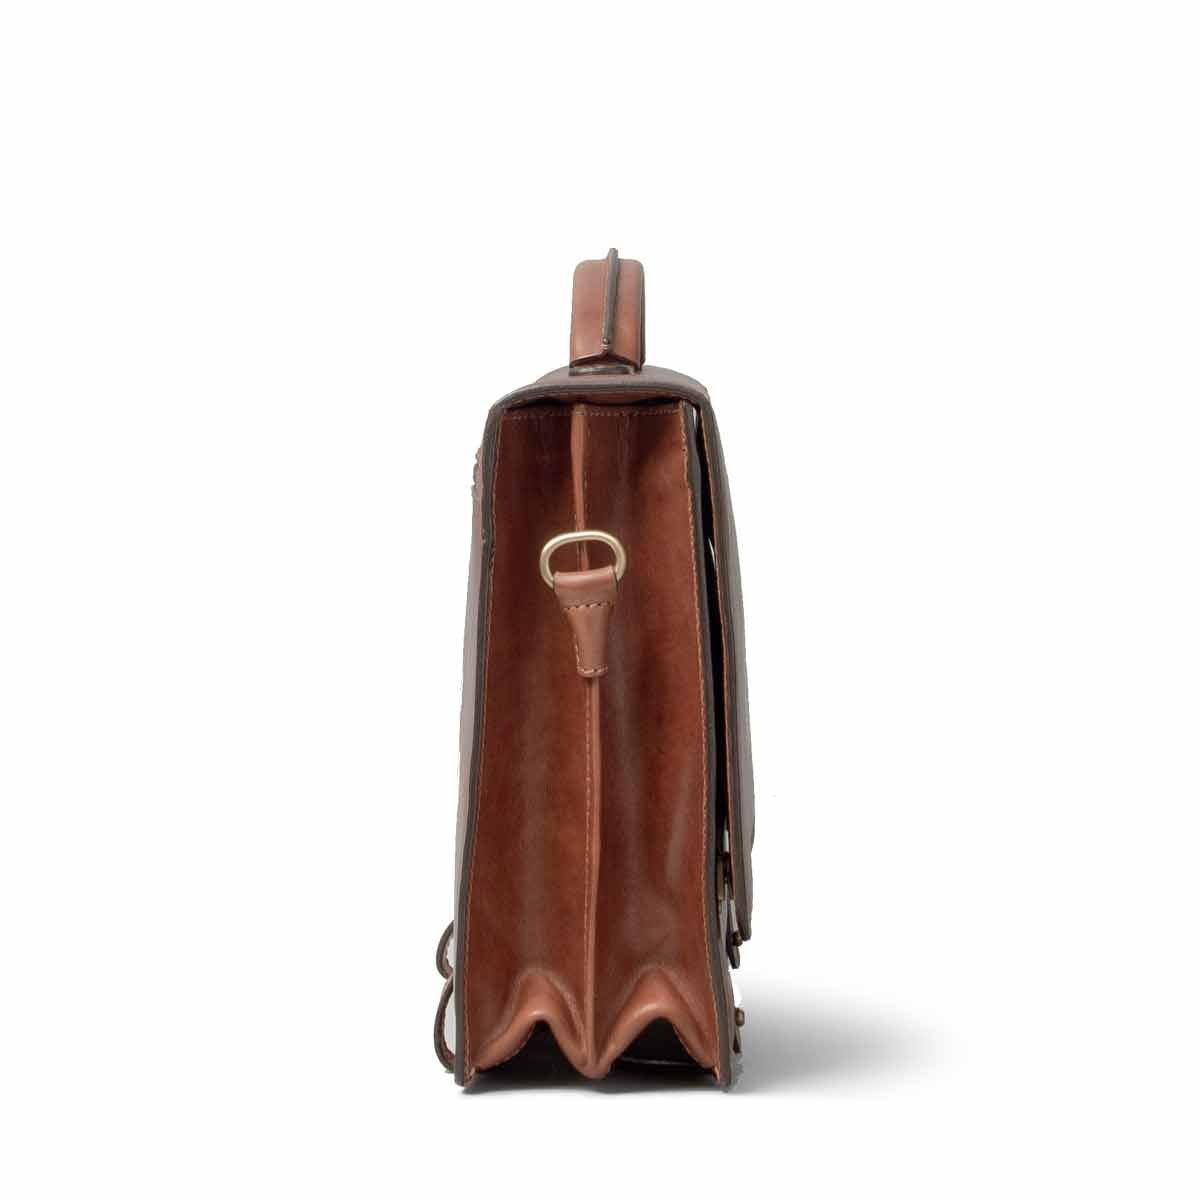 Maxwell Scott Personalized Luxury Tan Mens Leather Satchels (The Battista) - One Size by Maxwell Scott Bags (Image #4)